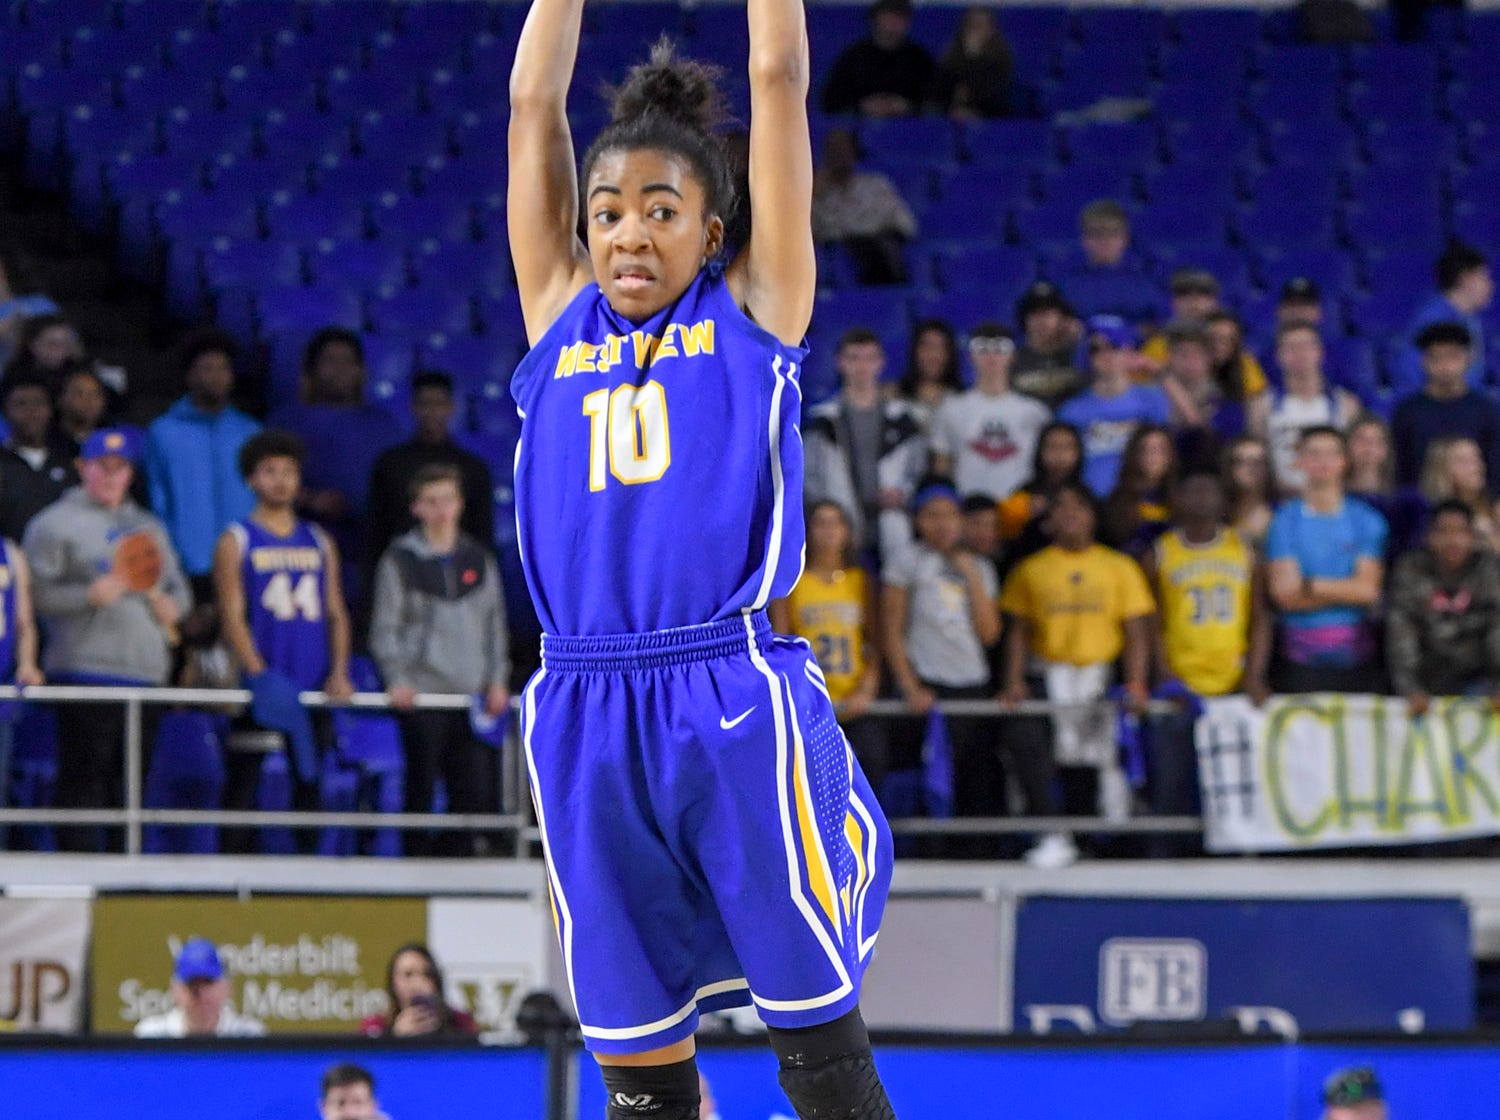 Westview's Zanasha Gadlen (10) reaches up to grab a pass during their Class AA championship game against Cheatham County, Saturday, March 9, 2019, in Murfreesboro.